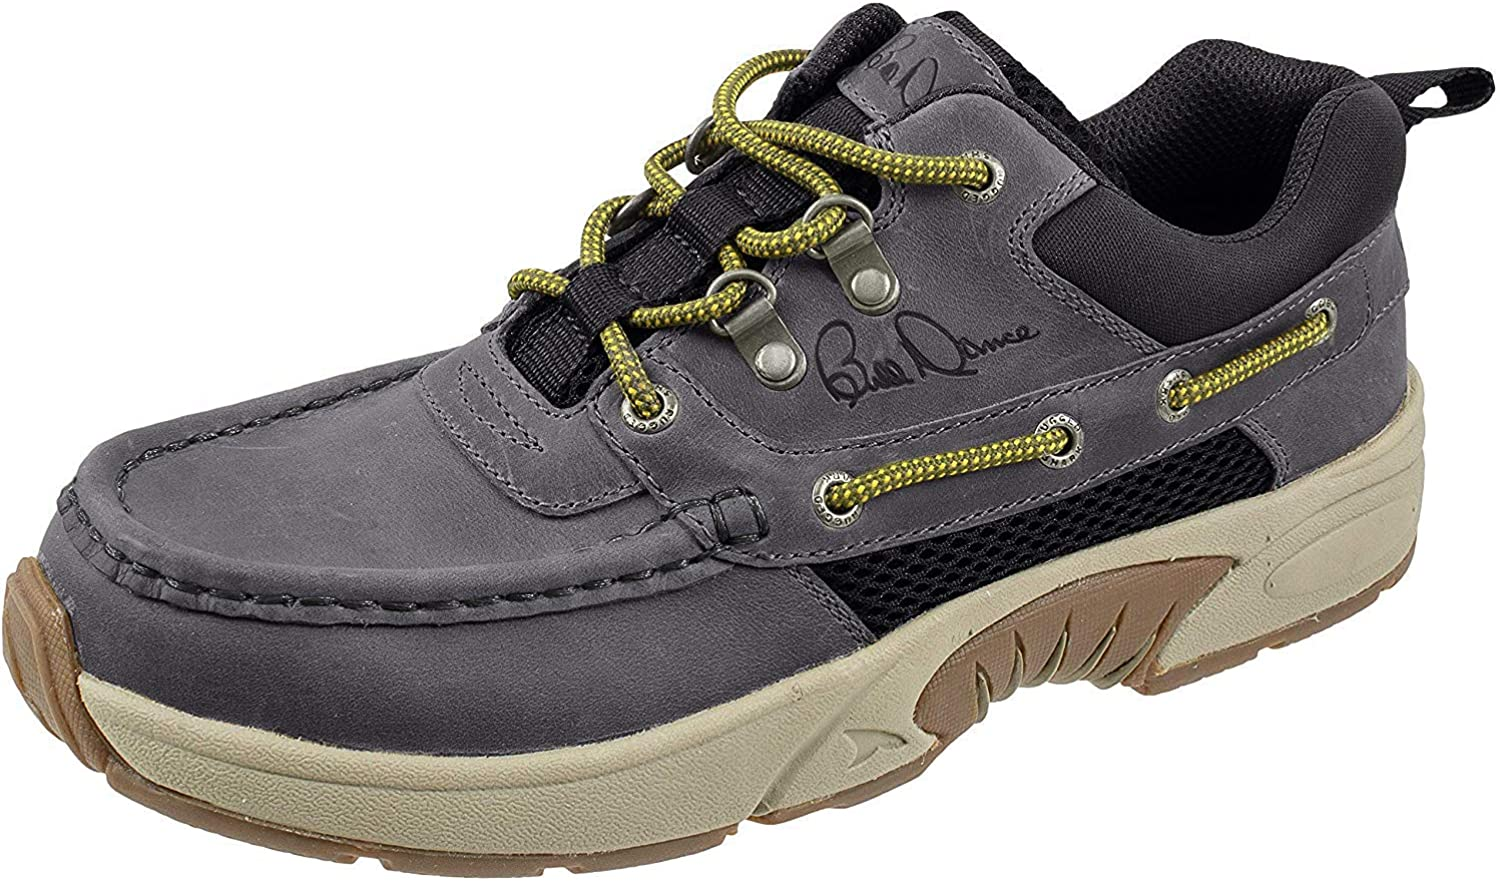 Rugged Shark Bill Dance Pro Boat Shoe, Premium Leather and Comfort, Fishing and Outdoor Shoe, Men's Sizes 8 to 13